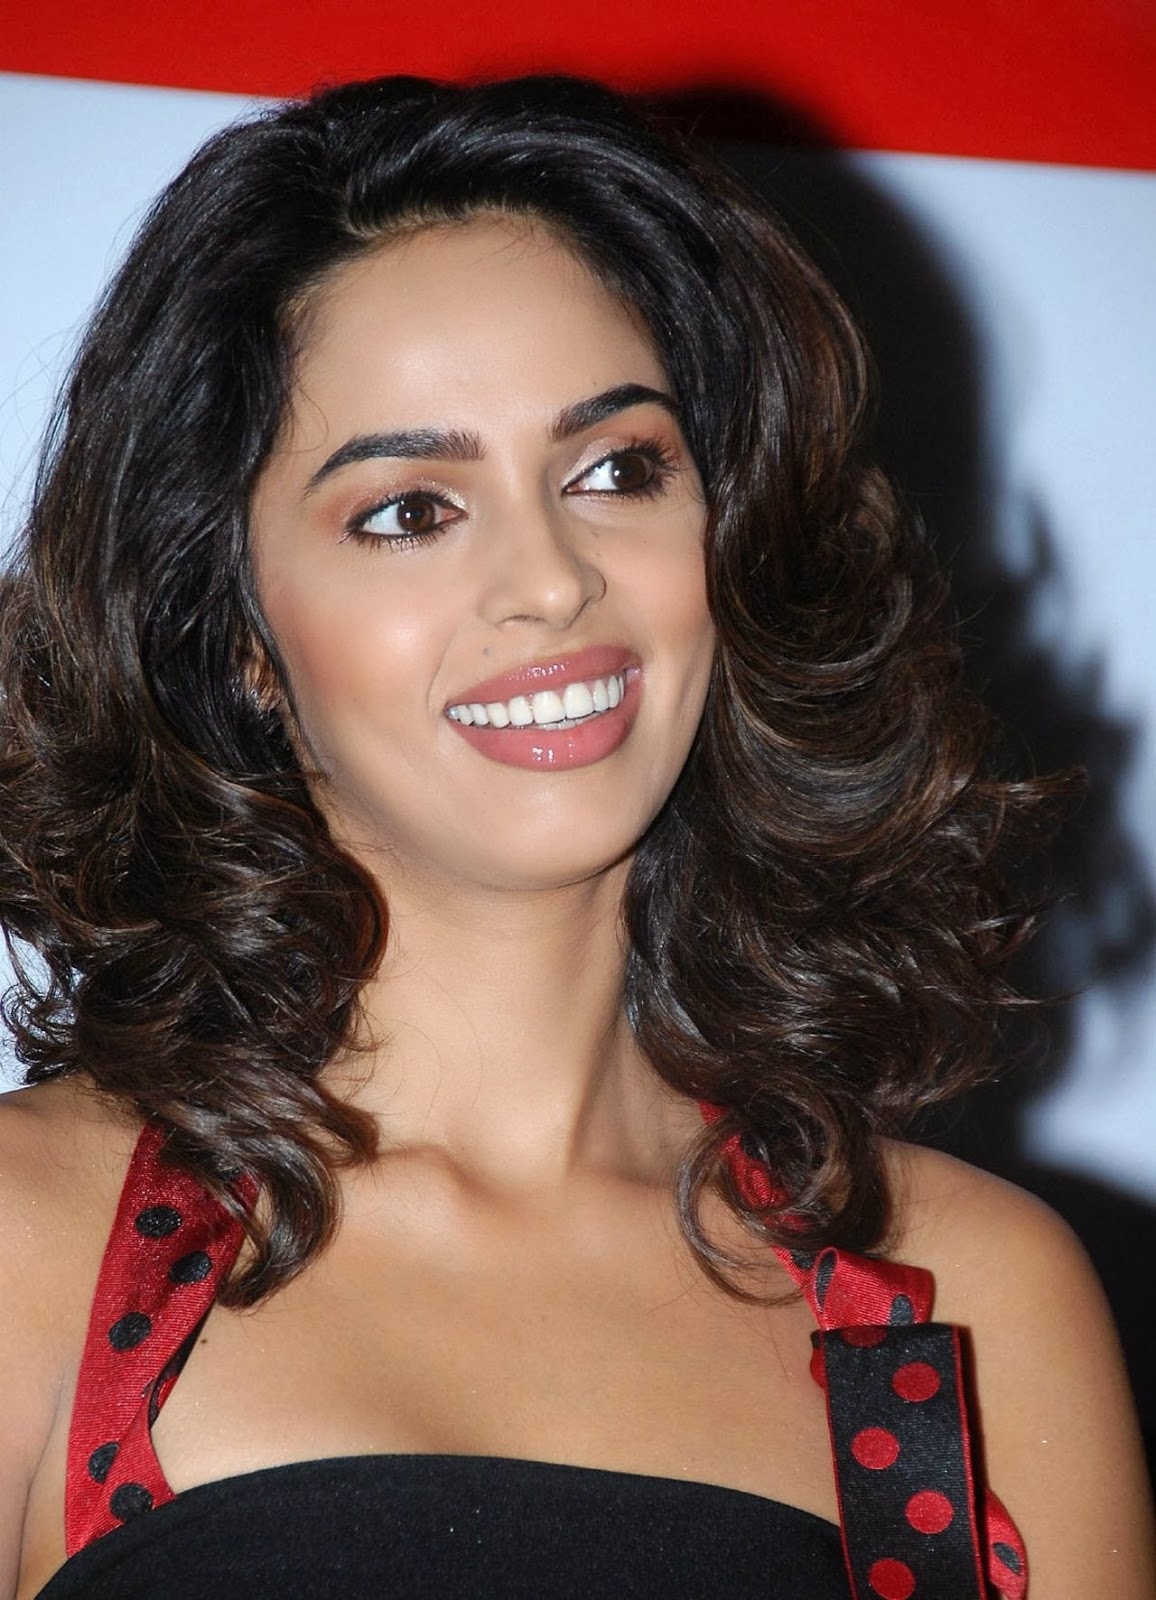 Can recommend Mallika sherawat face you uneasy